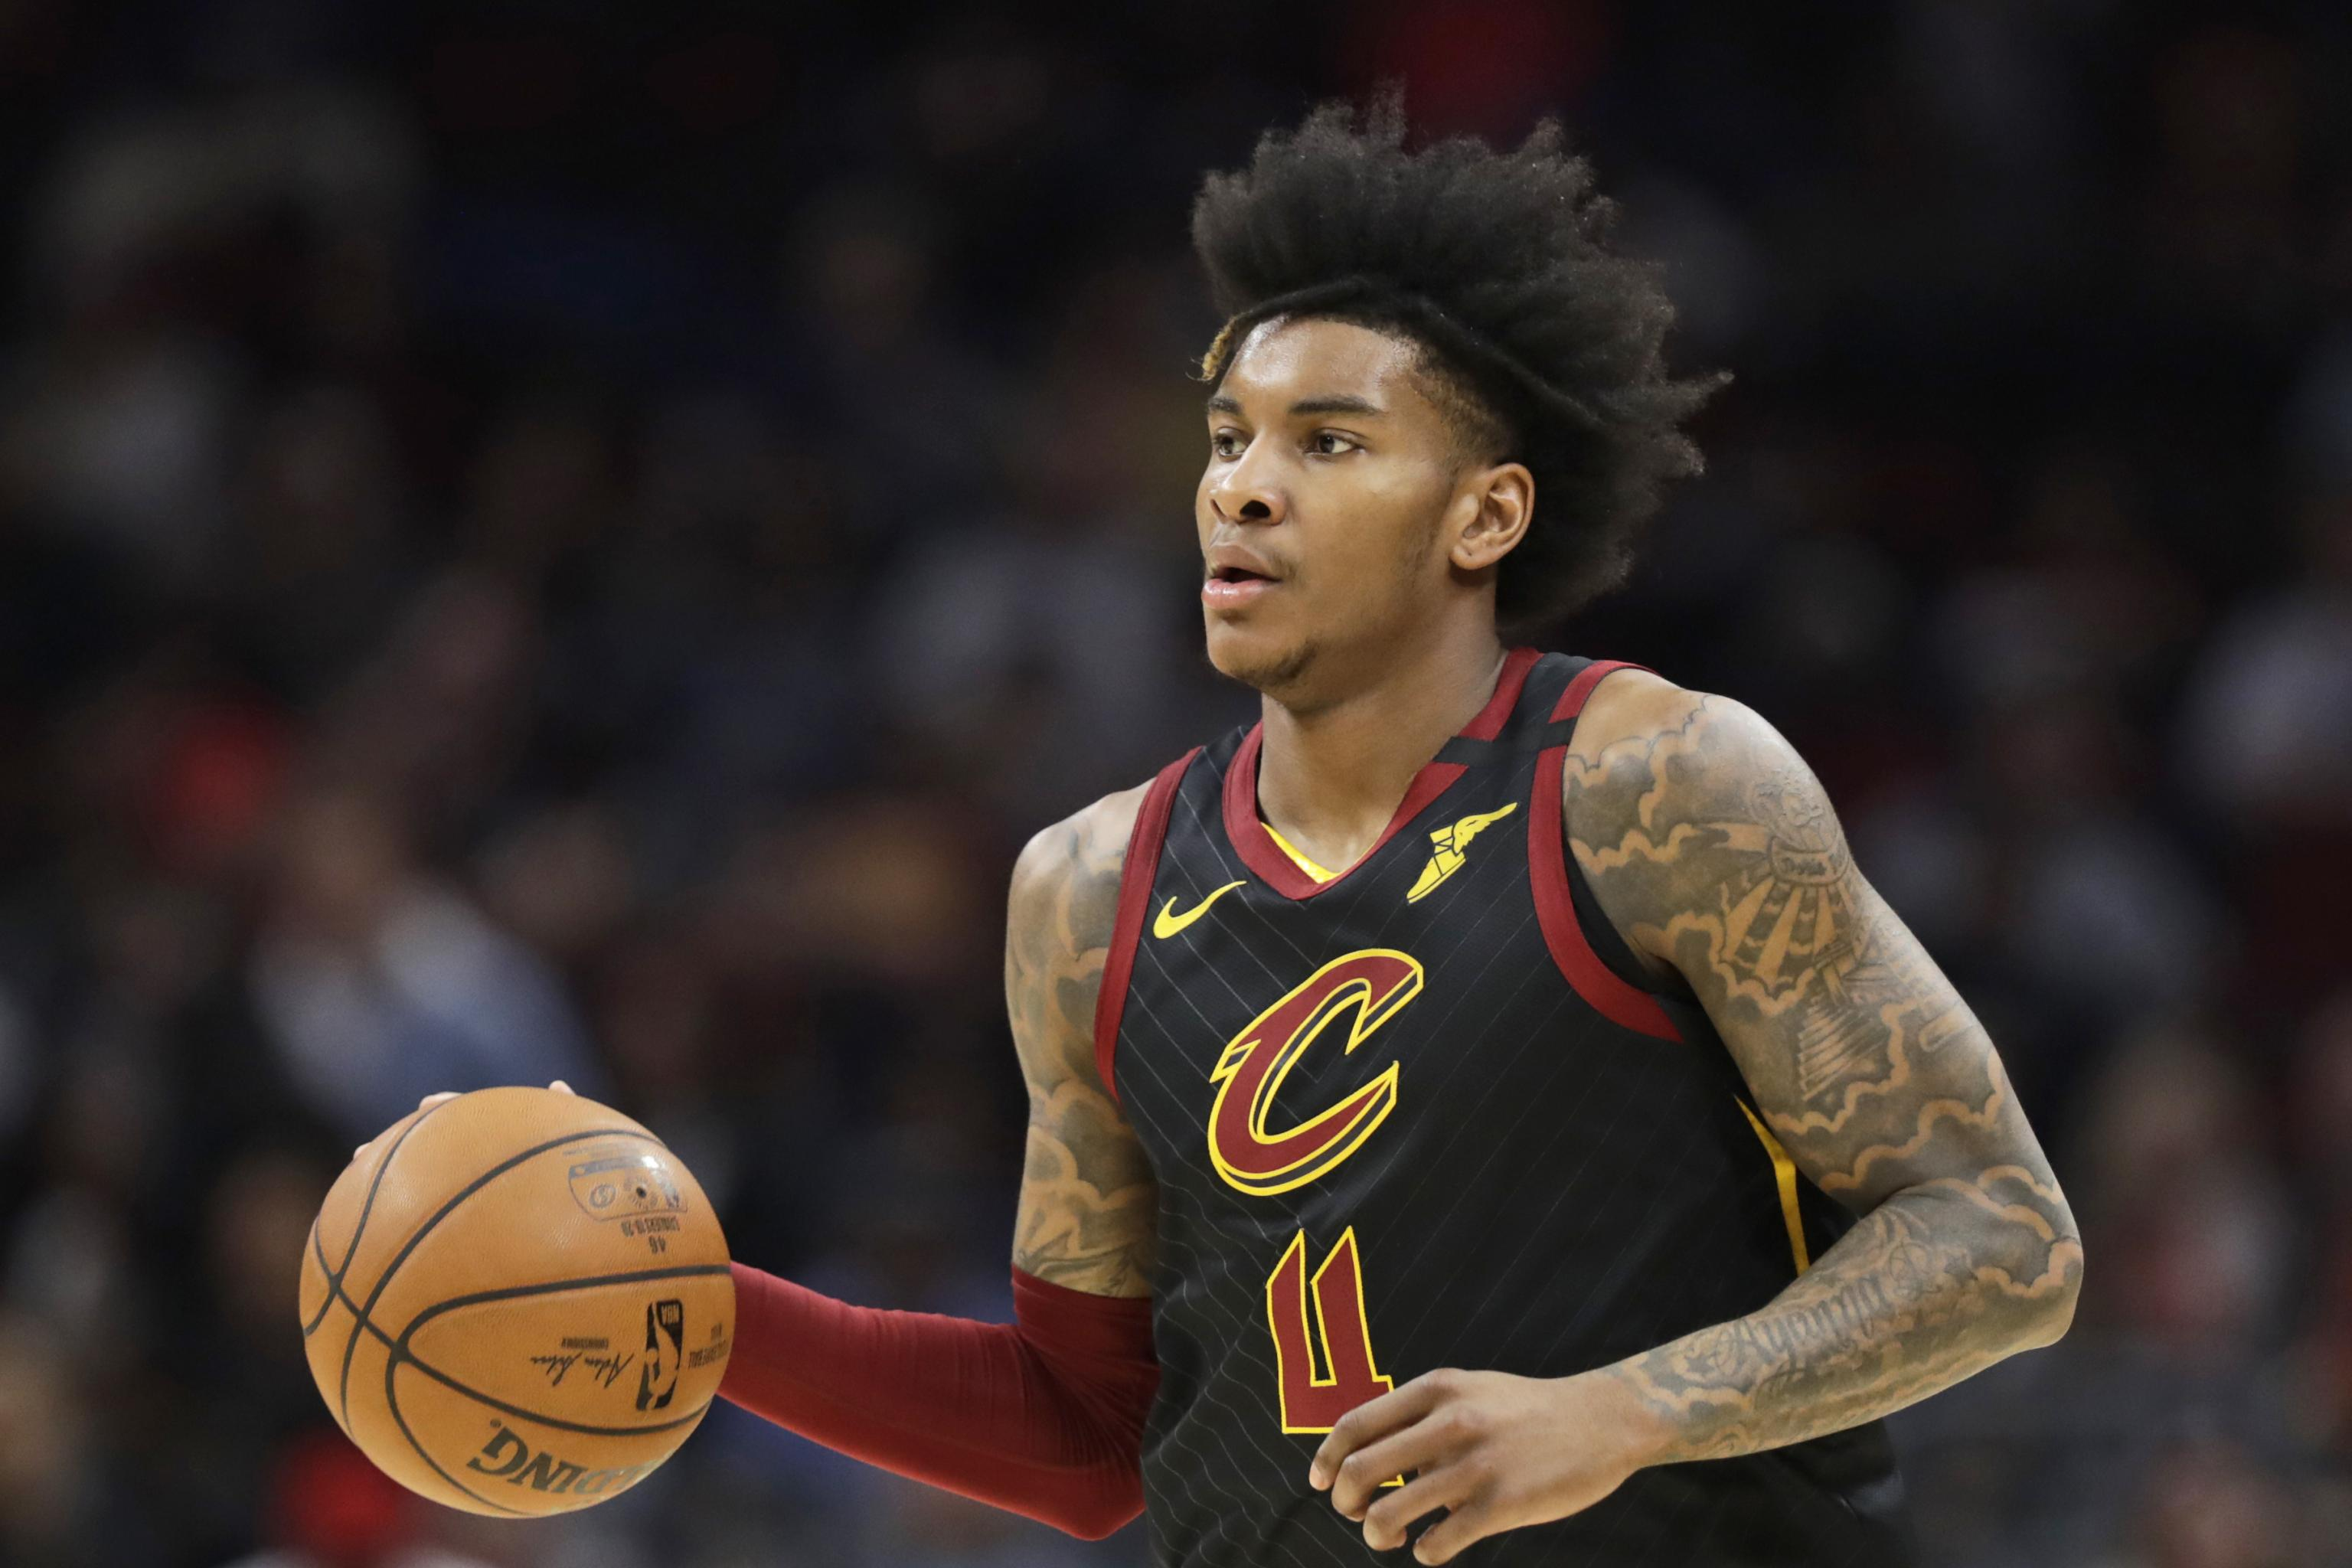 Cavs Rumors Kevin Porter Jr To Be Traded Or Cut After Locker Room Outburst Bleacher Report Latest News Videos And Highlights